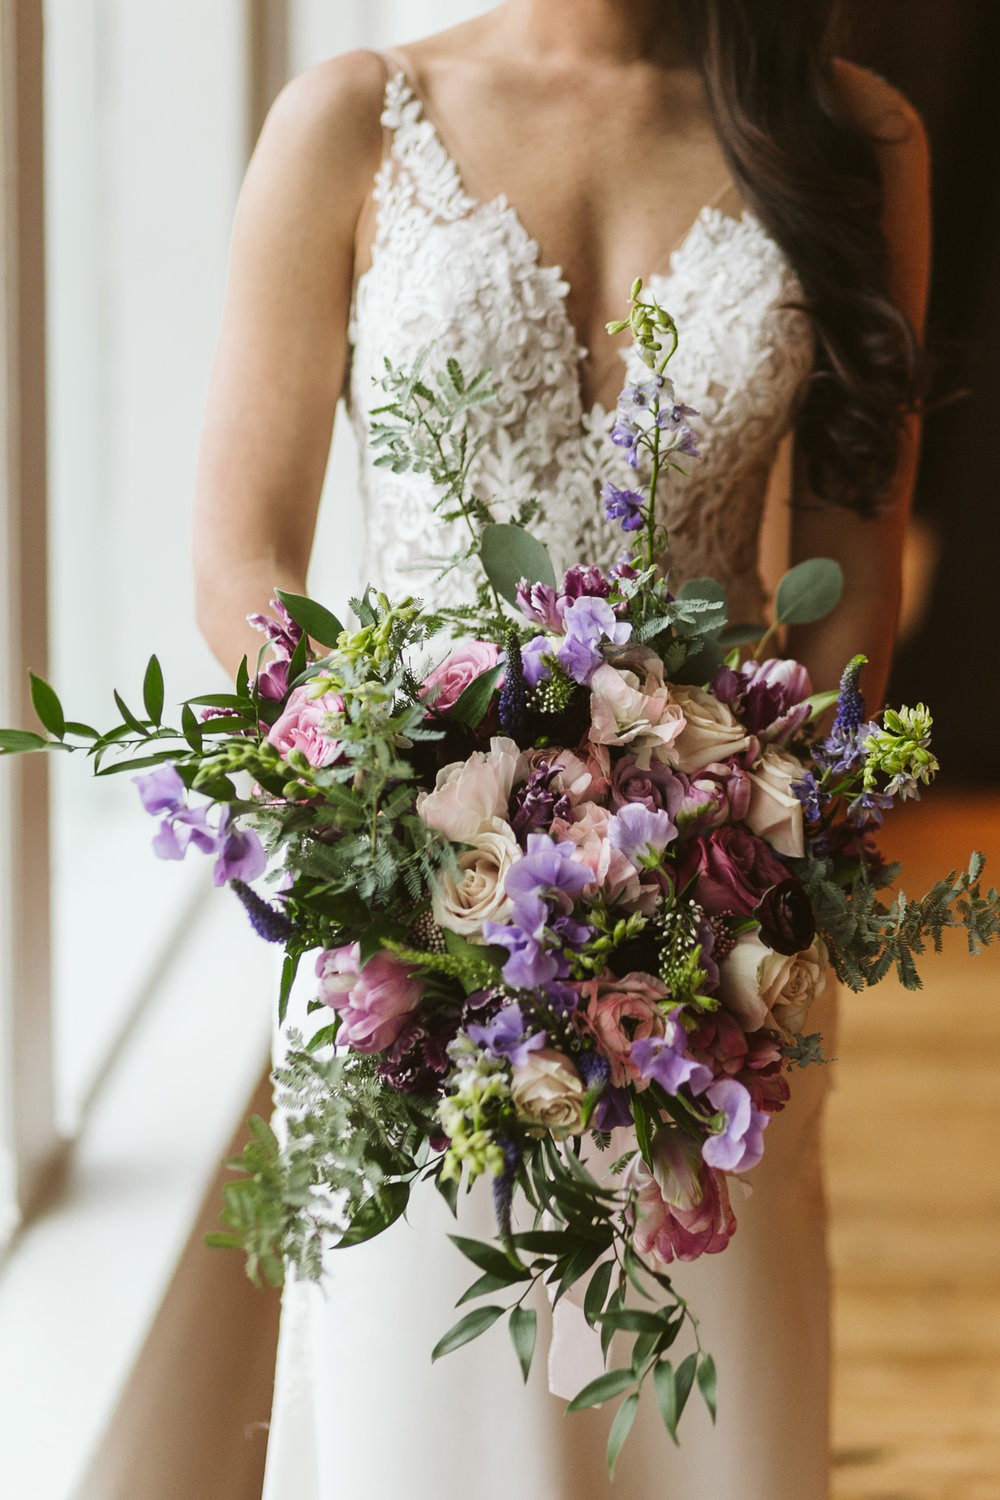 Textured Garden Bouquet with Slight Cascade  Style: garden, textured, woodland Details: sweet pea, veronica, ranunculus, larkspur, tulips, roses, mixed eucalyptus, silver dollar, ruscus greenery   {Photo courtesy of  Nick Allen Photo }